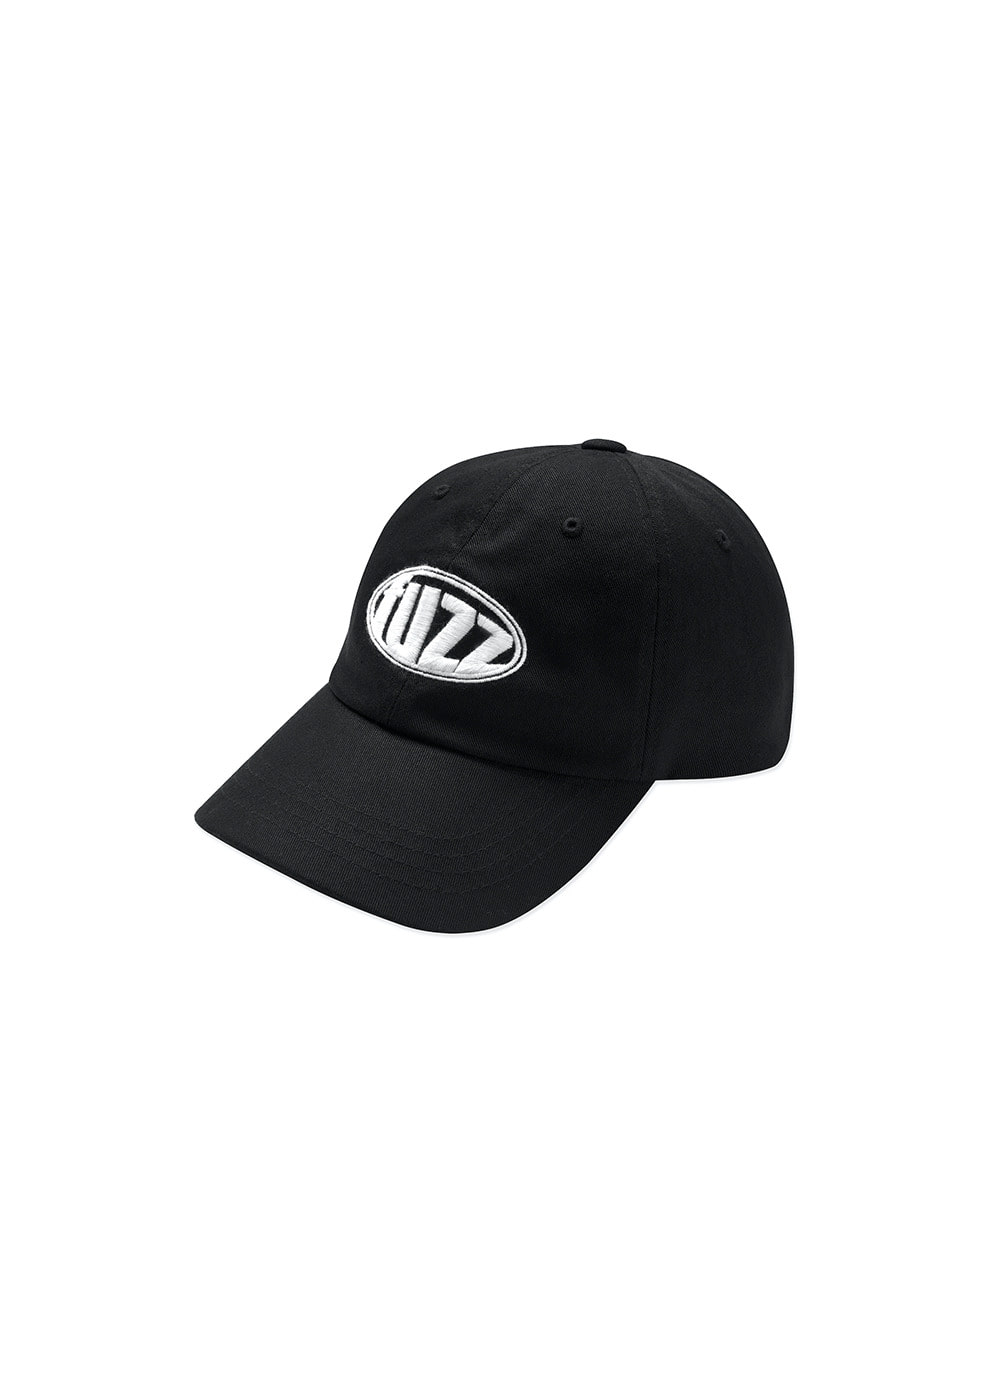 FUZZ CIRCLE LOGO CAP black